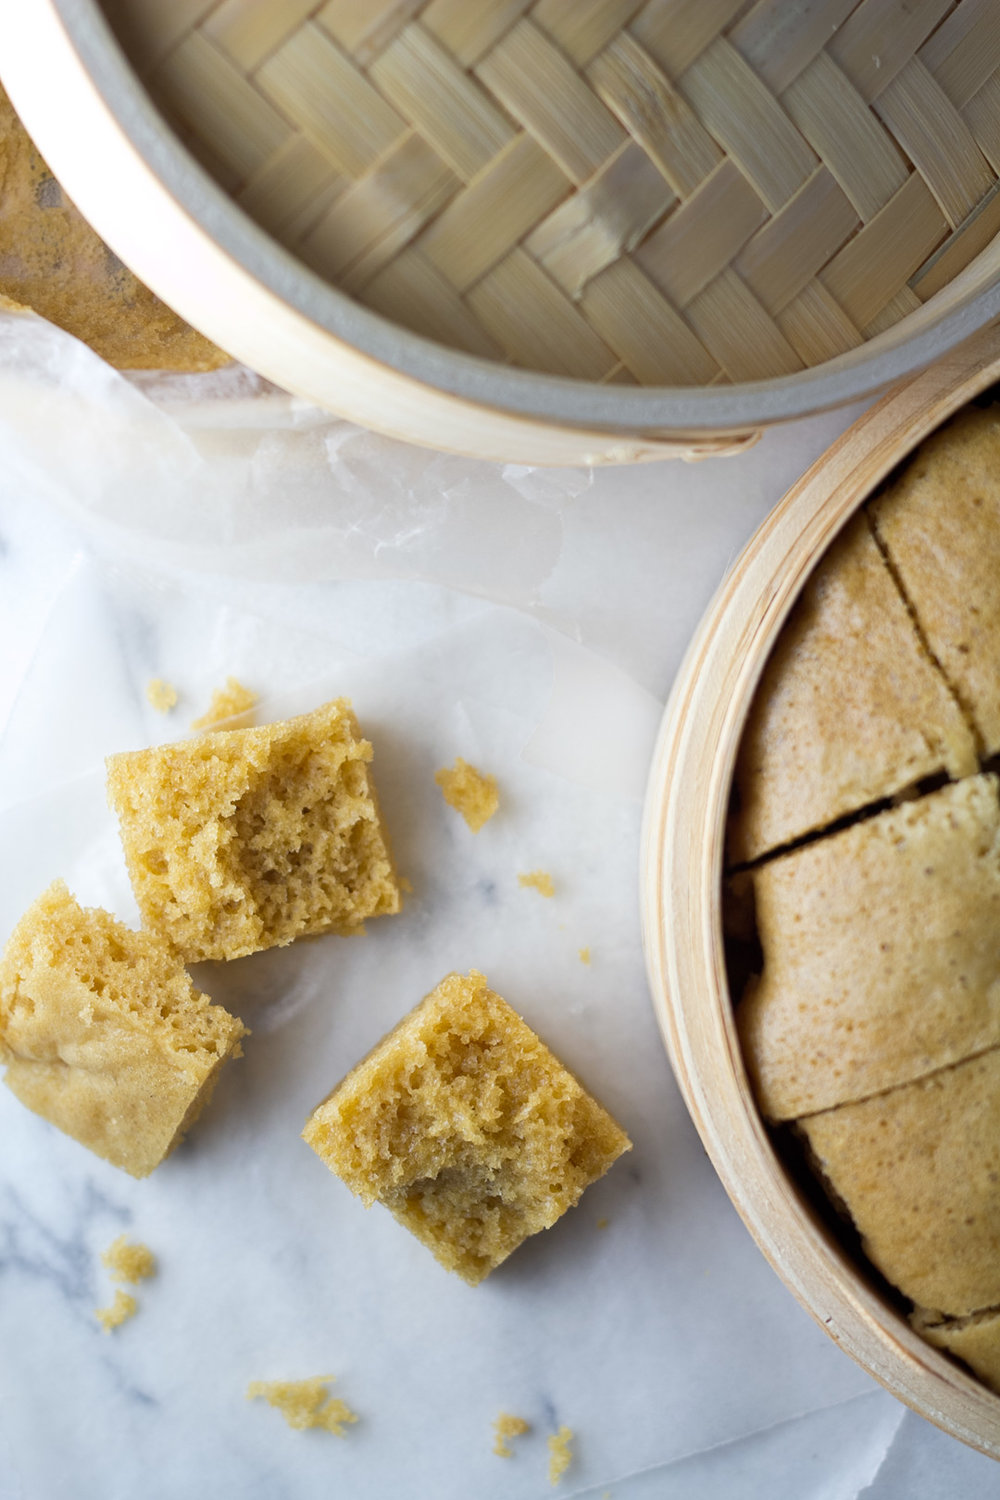 mah-lai-goh-malaysian-steamed-cake-top-view.jpg